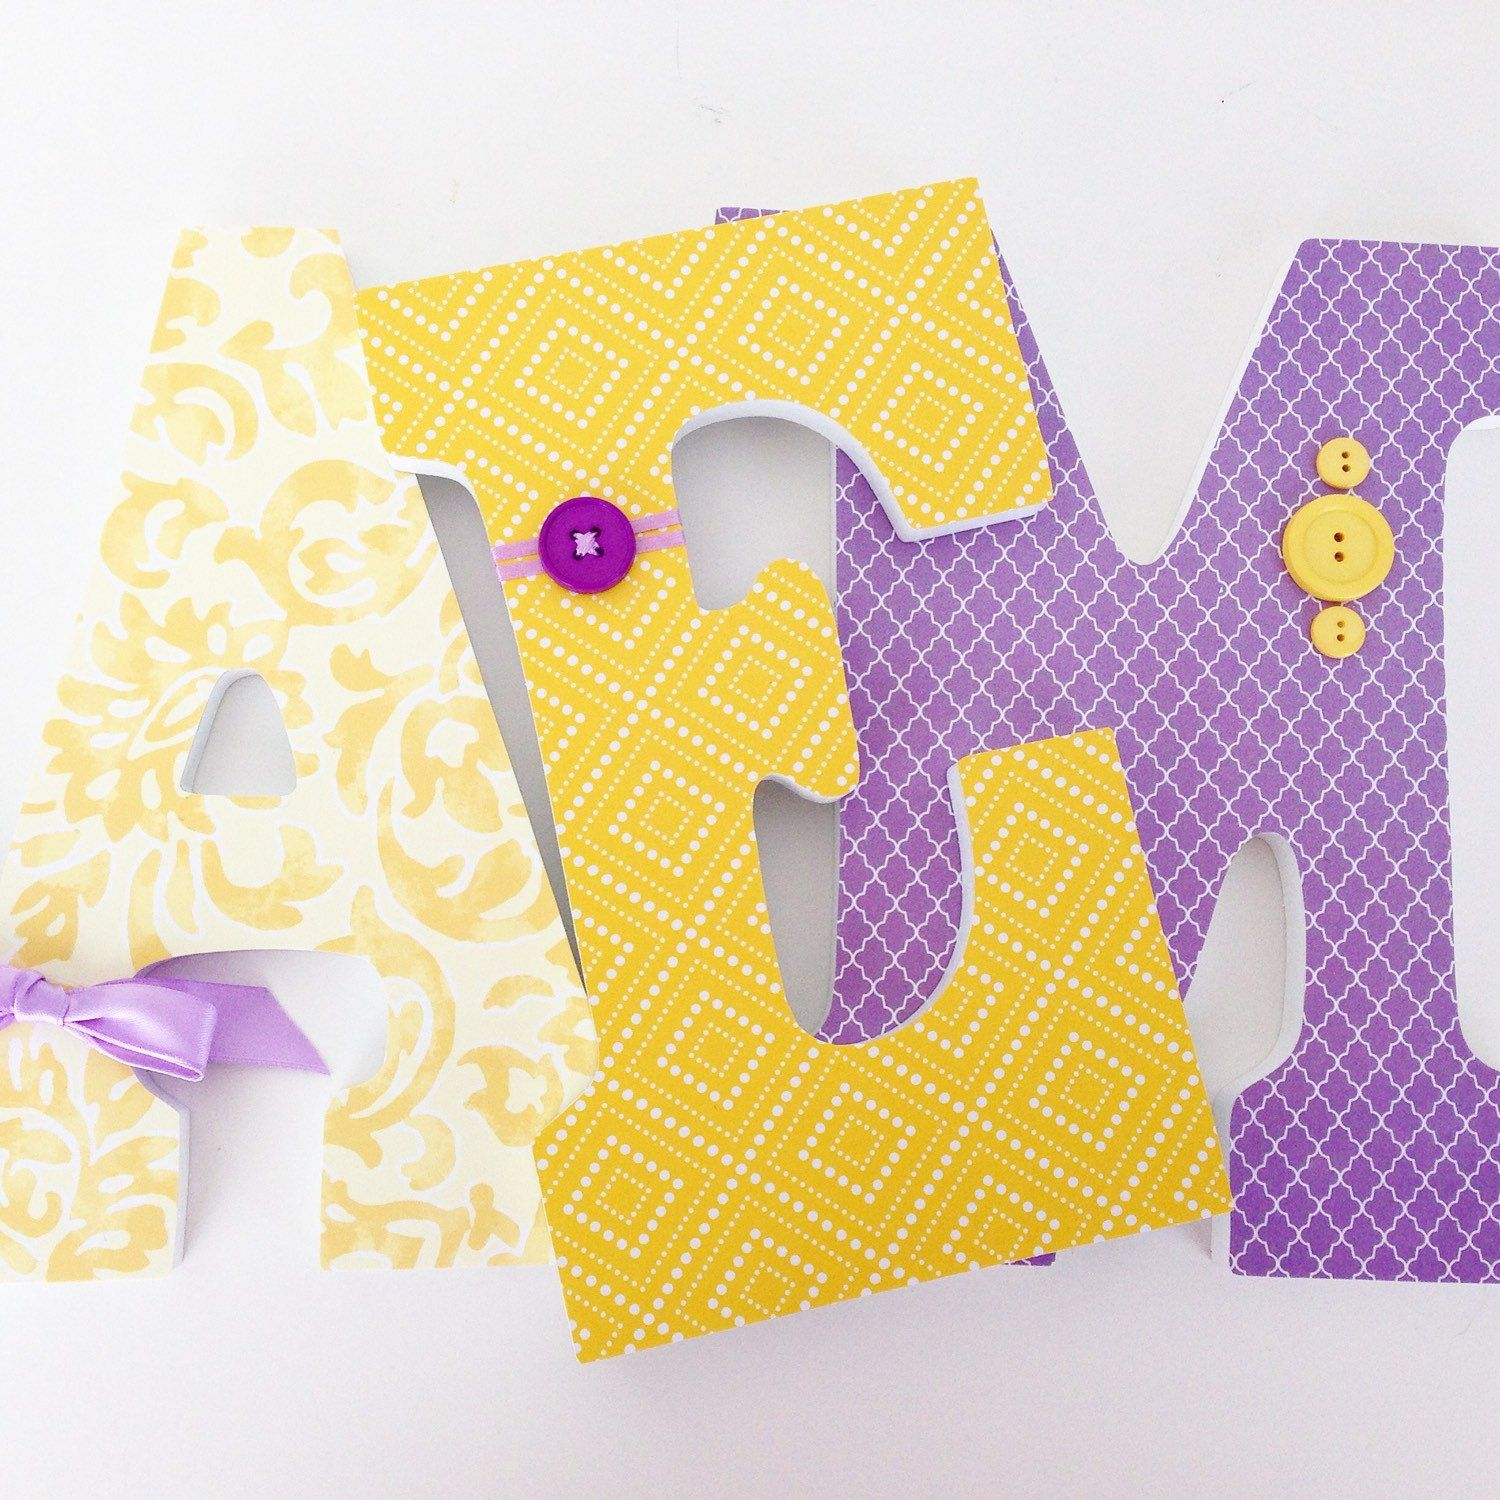 Baby Name Letters, Lavender and Yellow Nursery Decor, Purple Bedroom ...